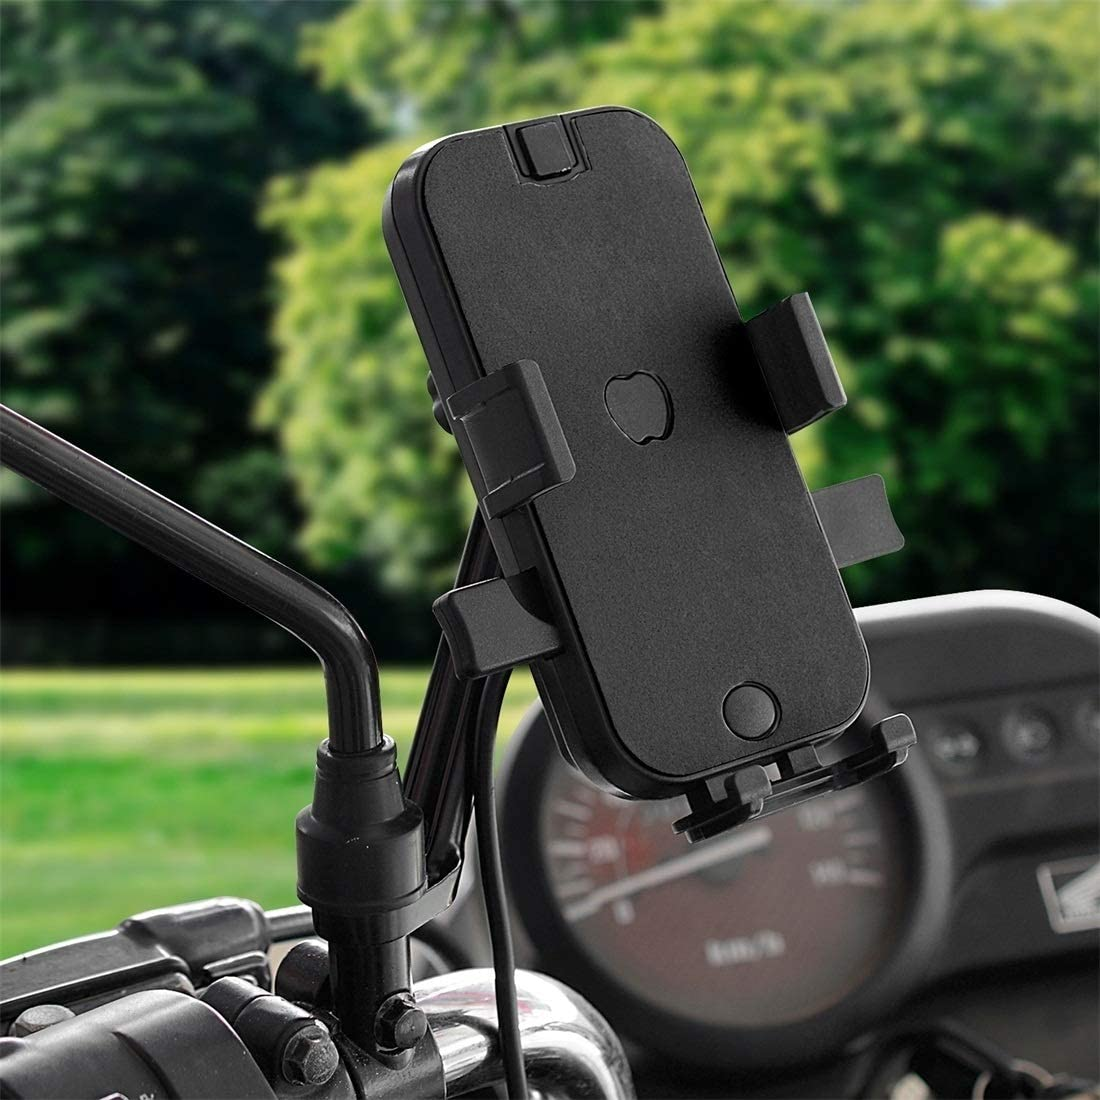 Happyshopping Bracket CS-344C2 Motorcycle Chargeable Automatic Lock Mobile Phone Holder, Mirror Holder Version (Black) (Color : Black)